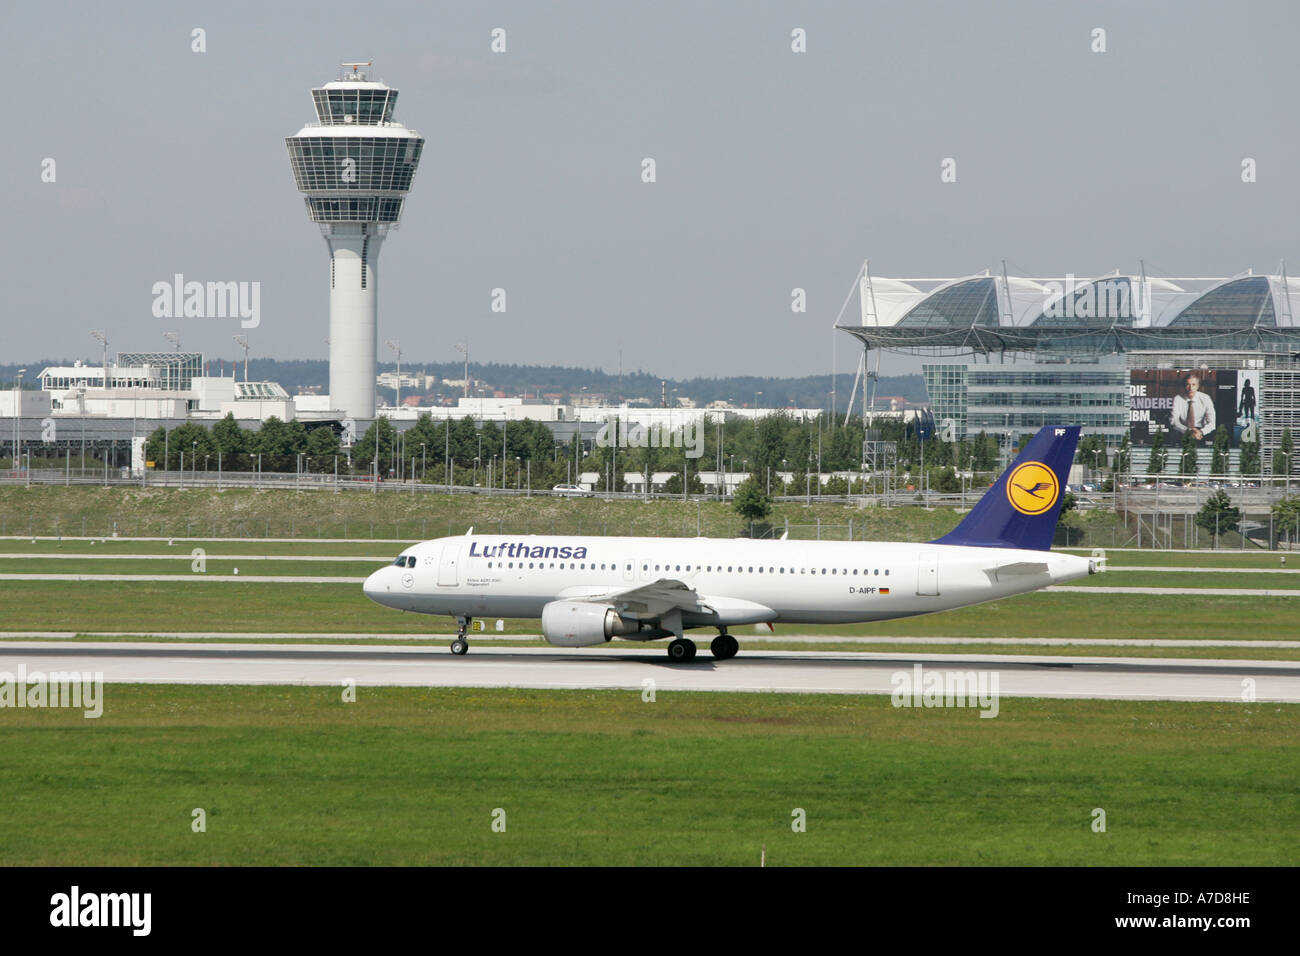 Munich, GER, 11. Aug. 2005 - The Lufthansa Airbus DEGGENDORF of type A320-200 taxies to the lift of position on Munich Airport. - Stock Image